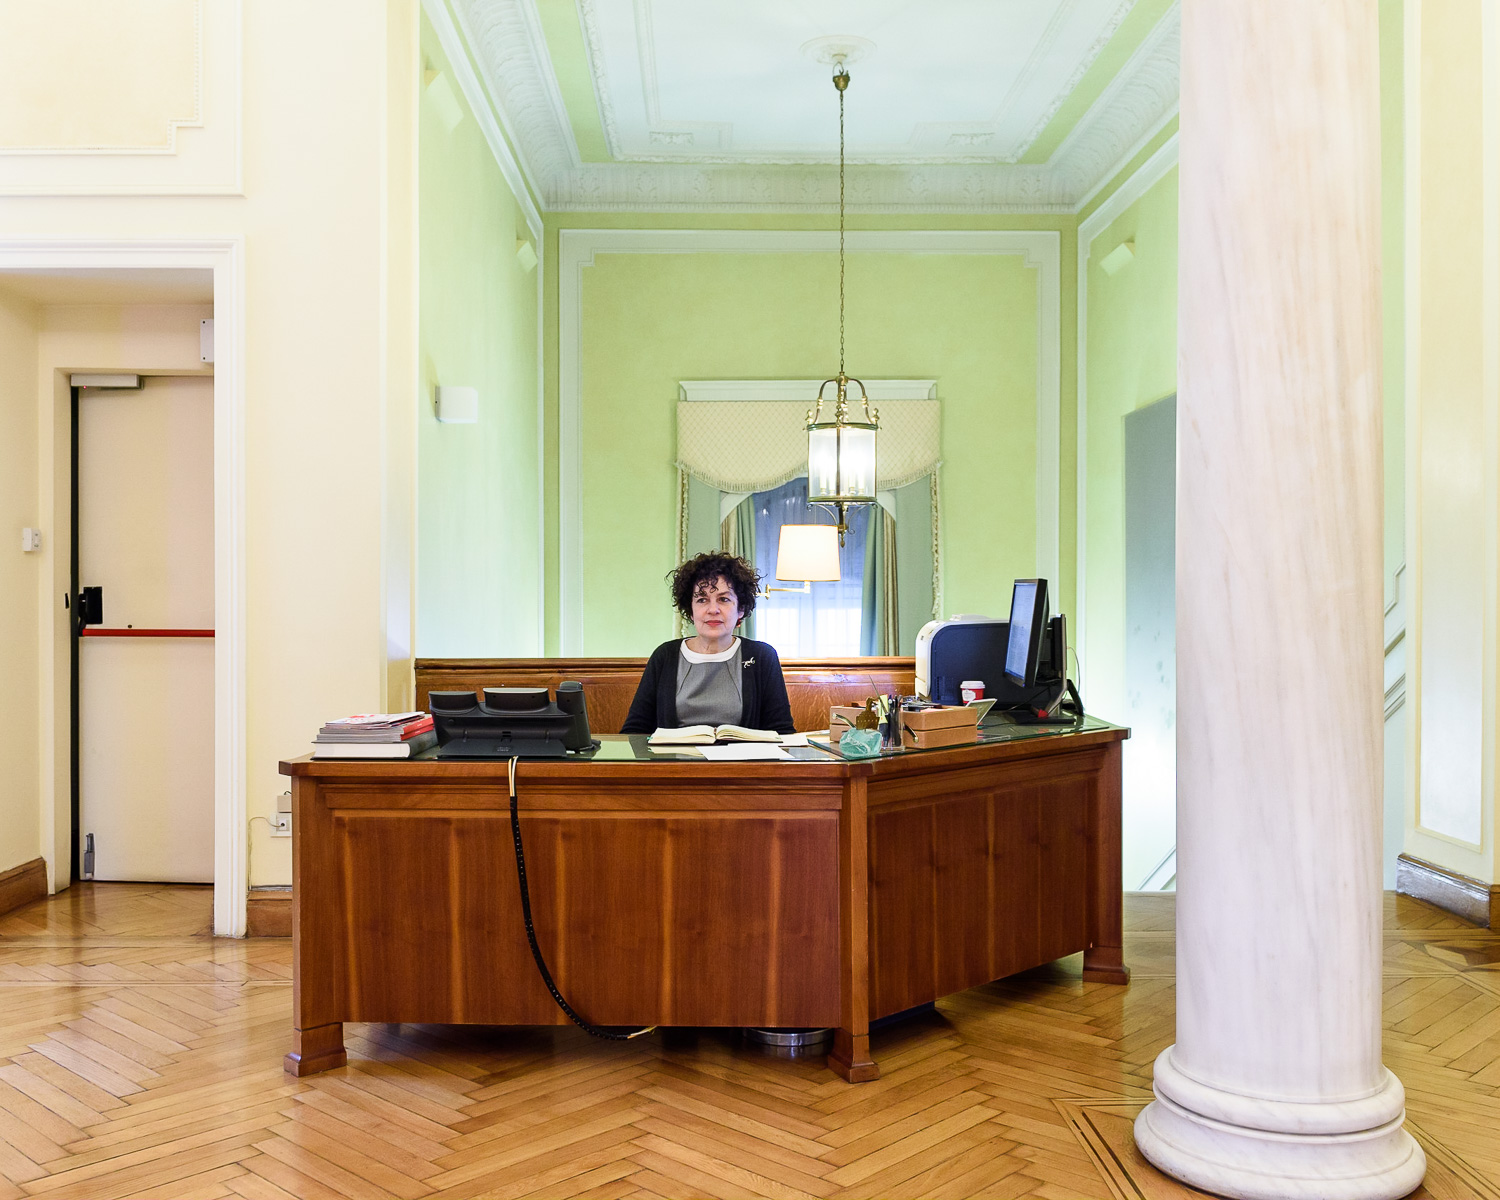 Receptionist at the Onassis Foundation